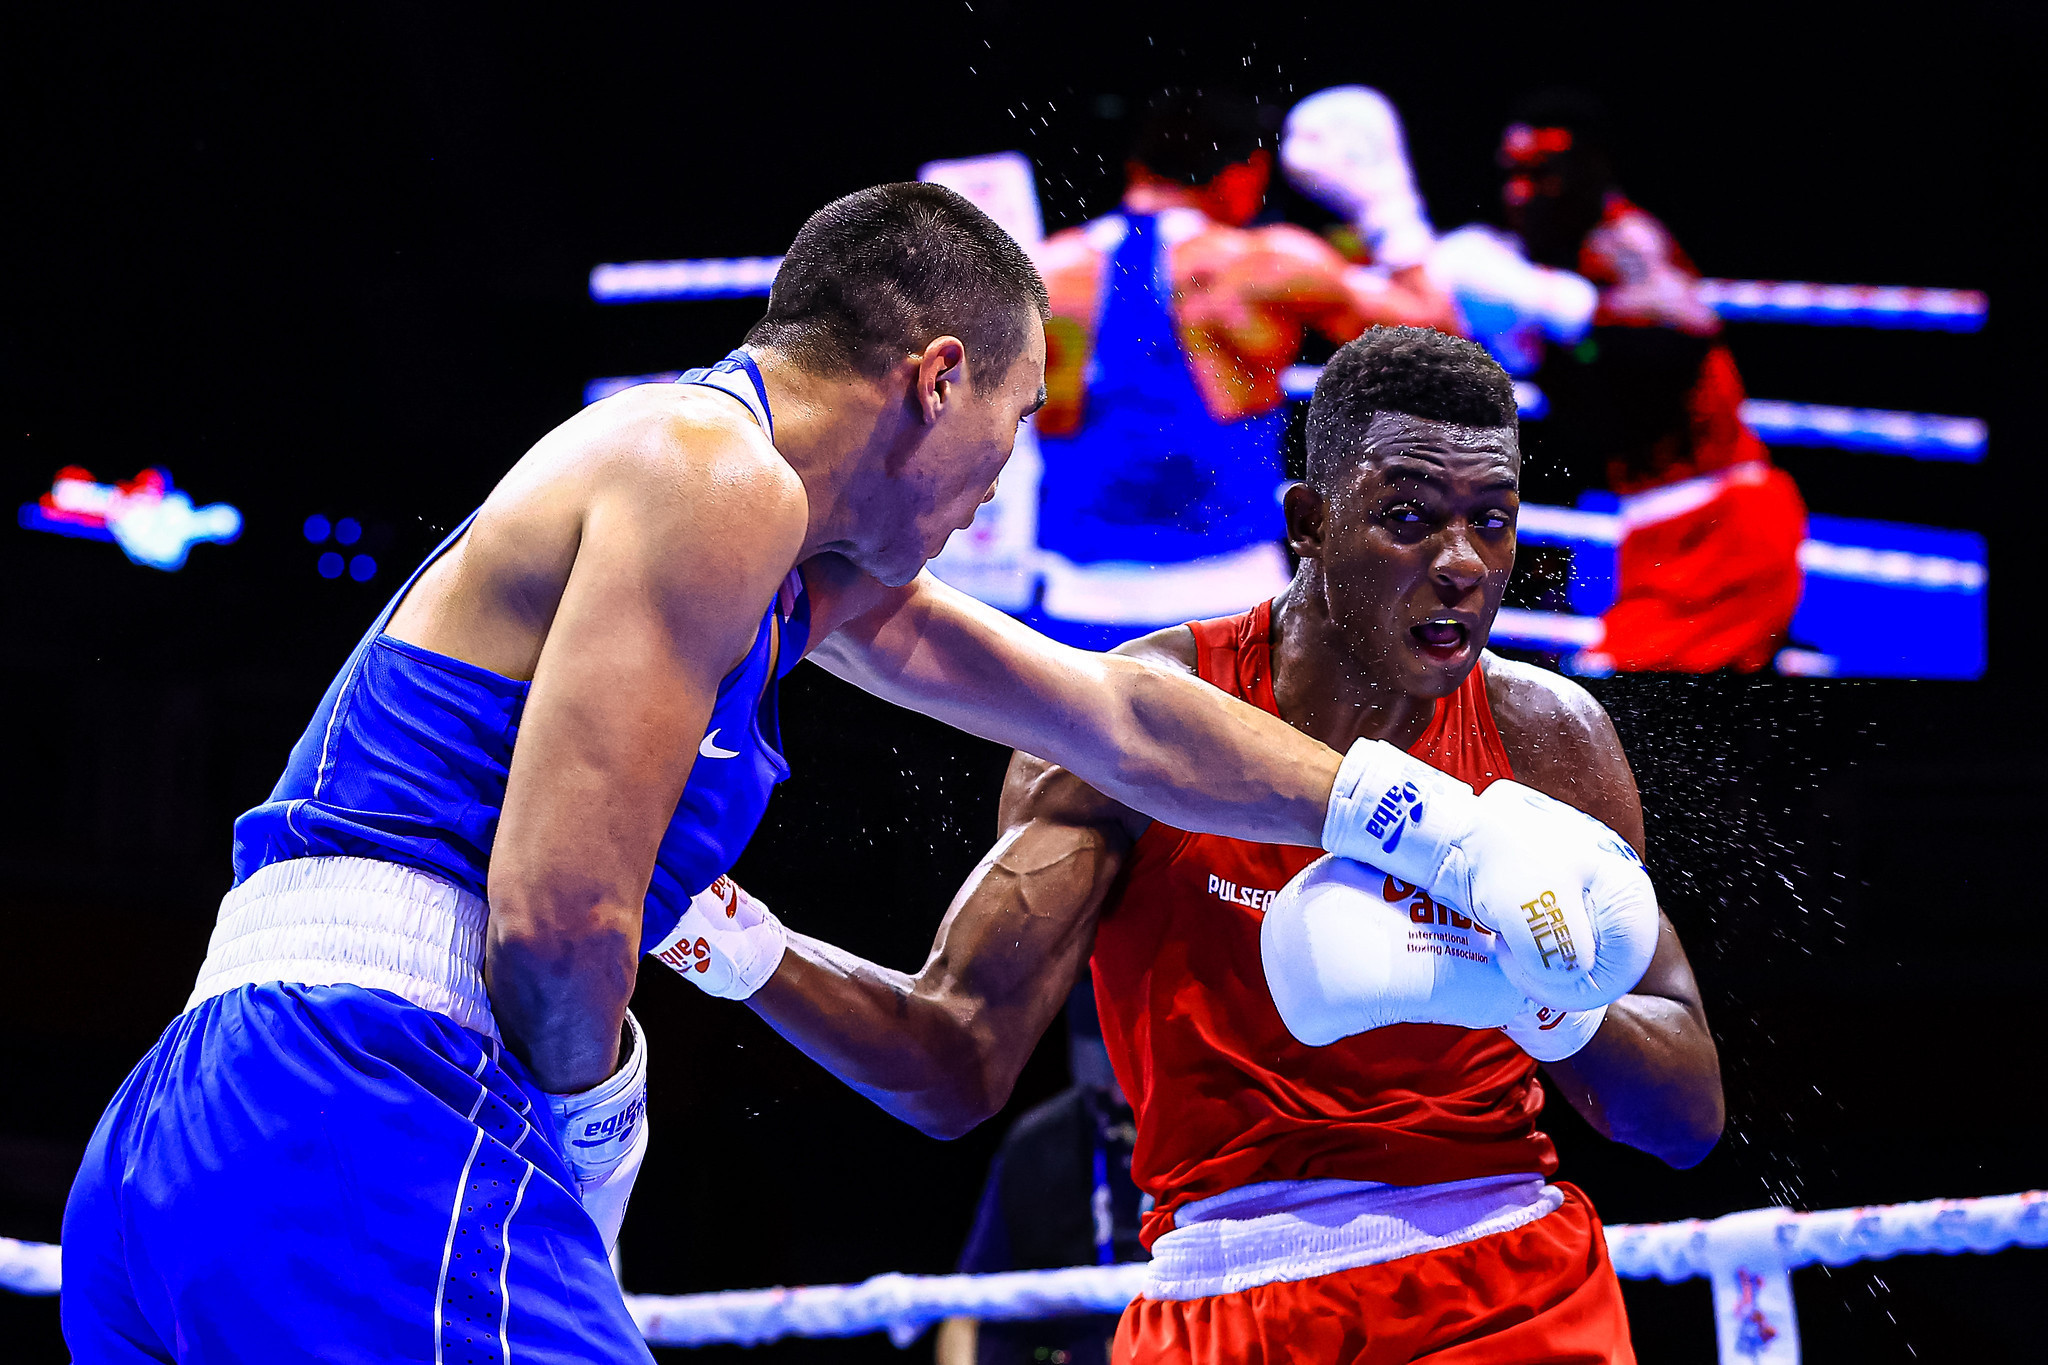 AIBA Men's World Boxing Championships: Day four of competition